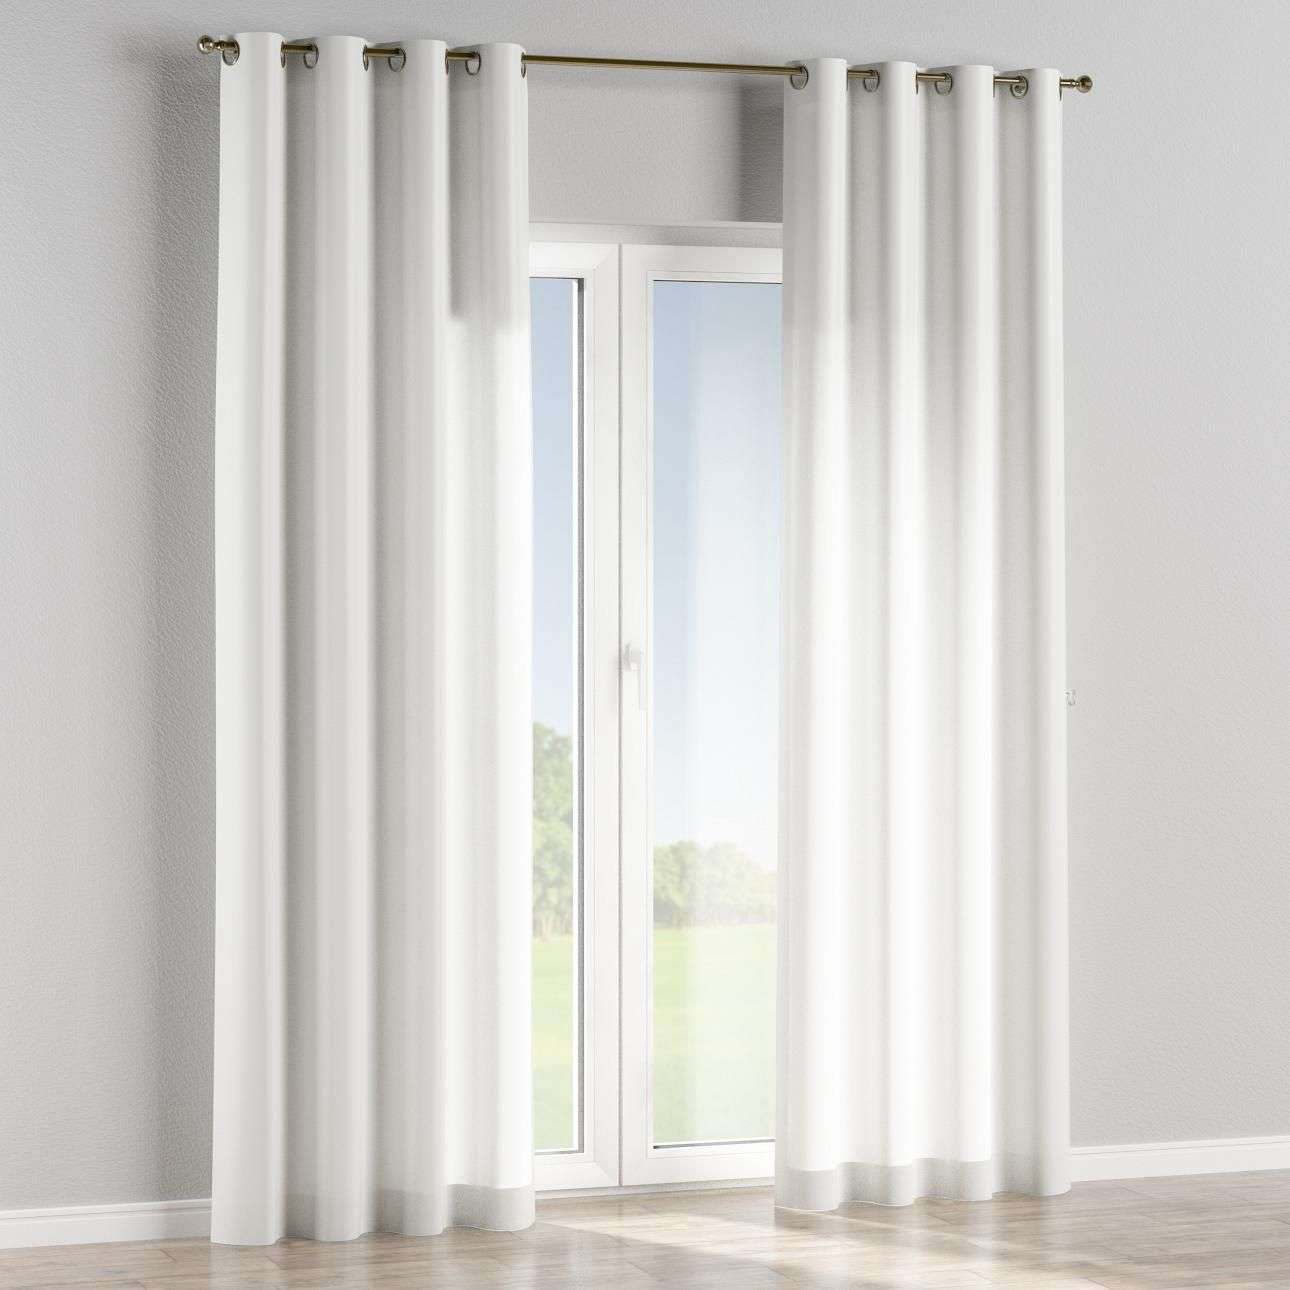 Eyelet curtains in collection Taffeta , fabric: 104-20